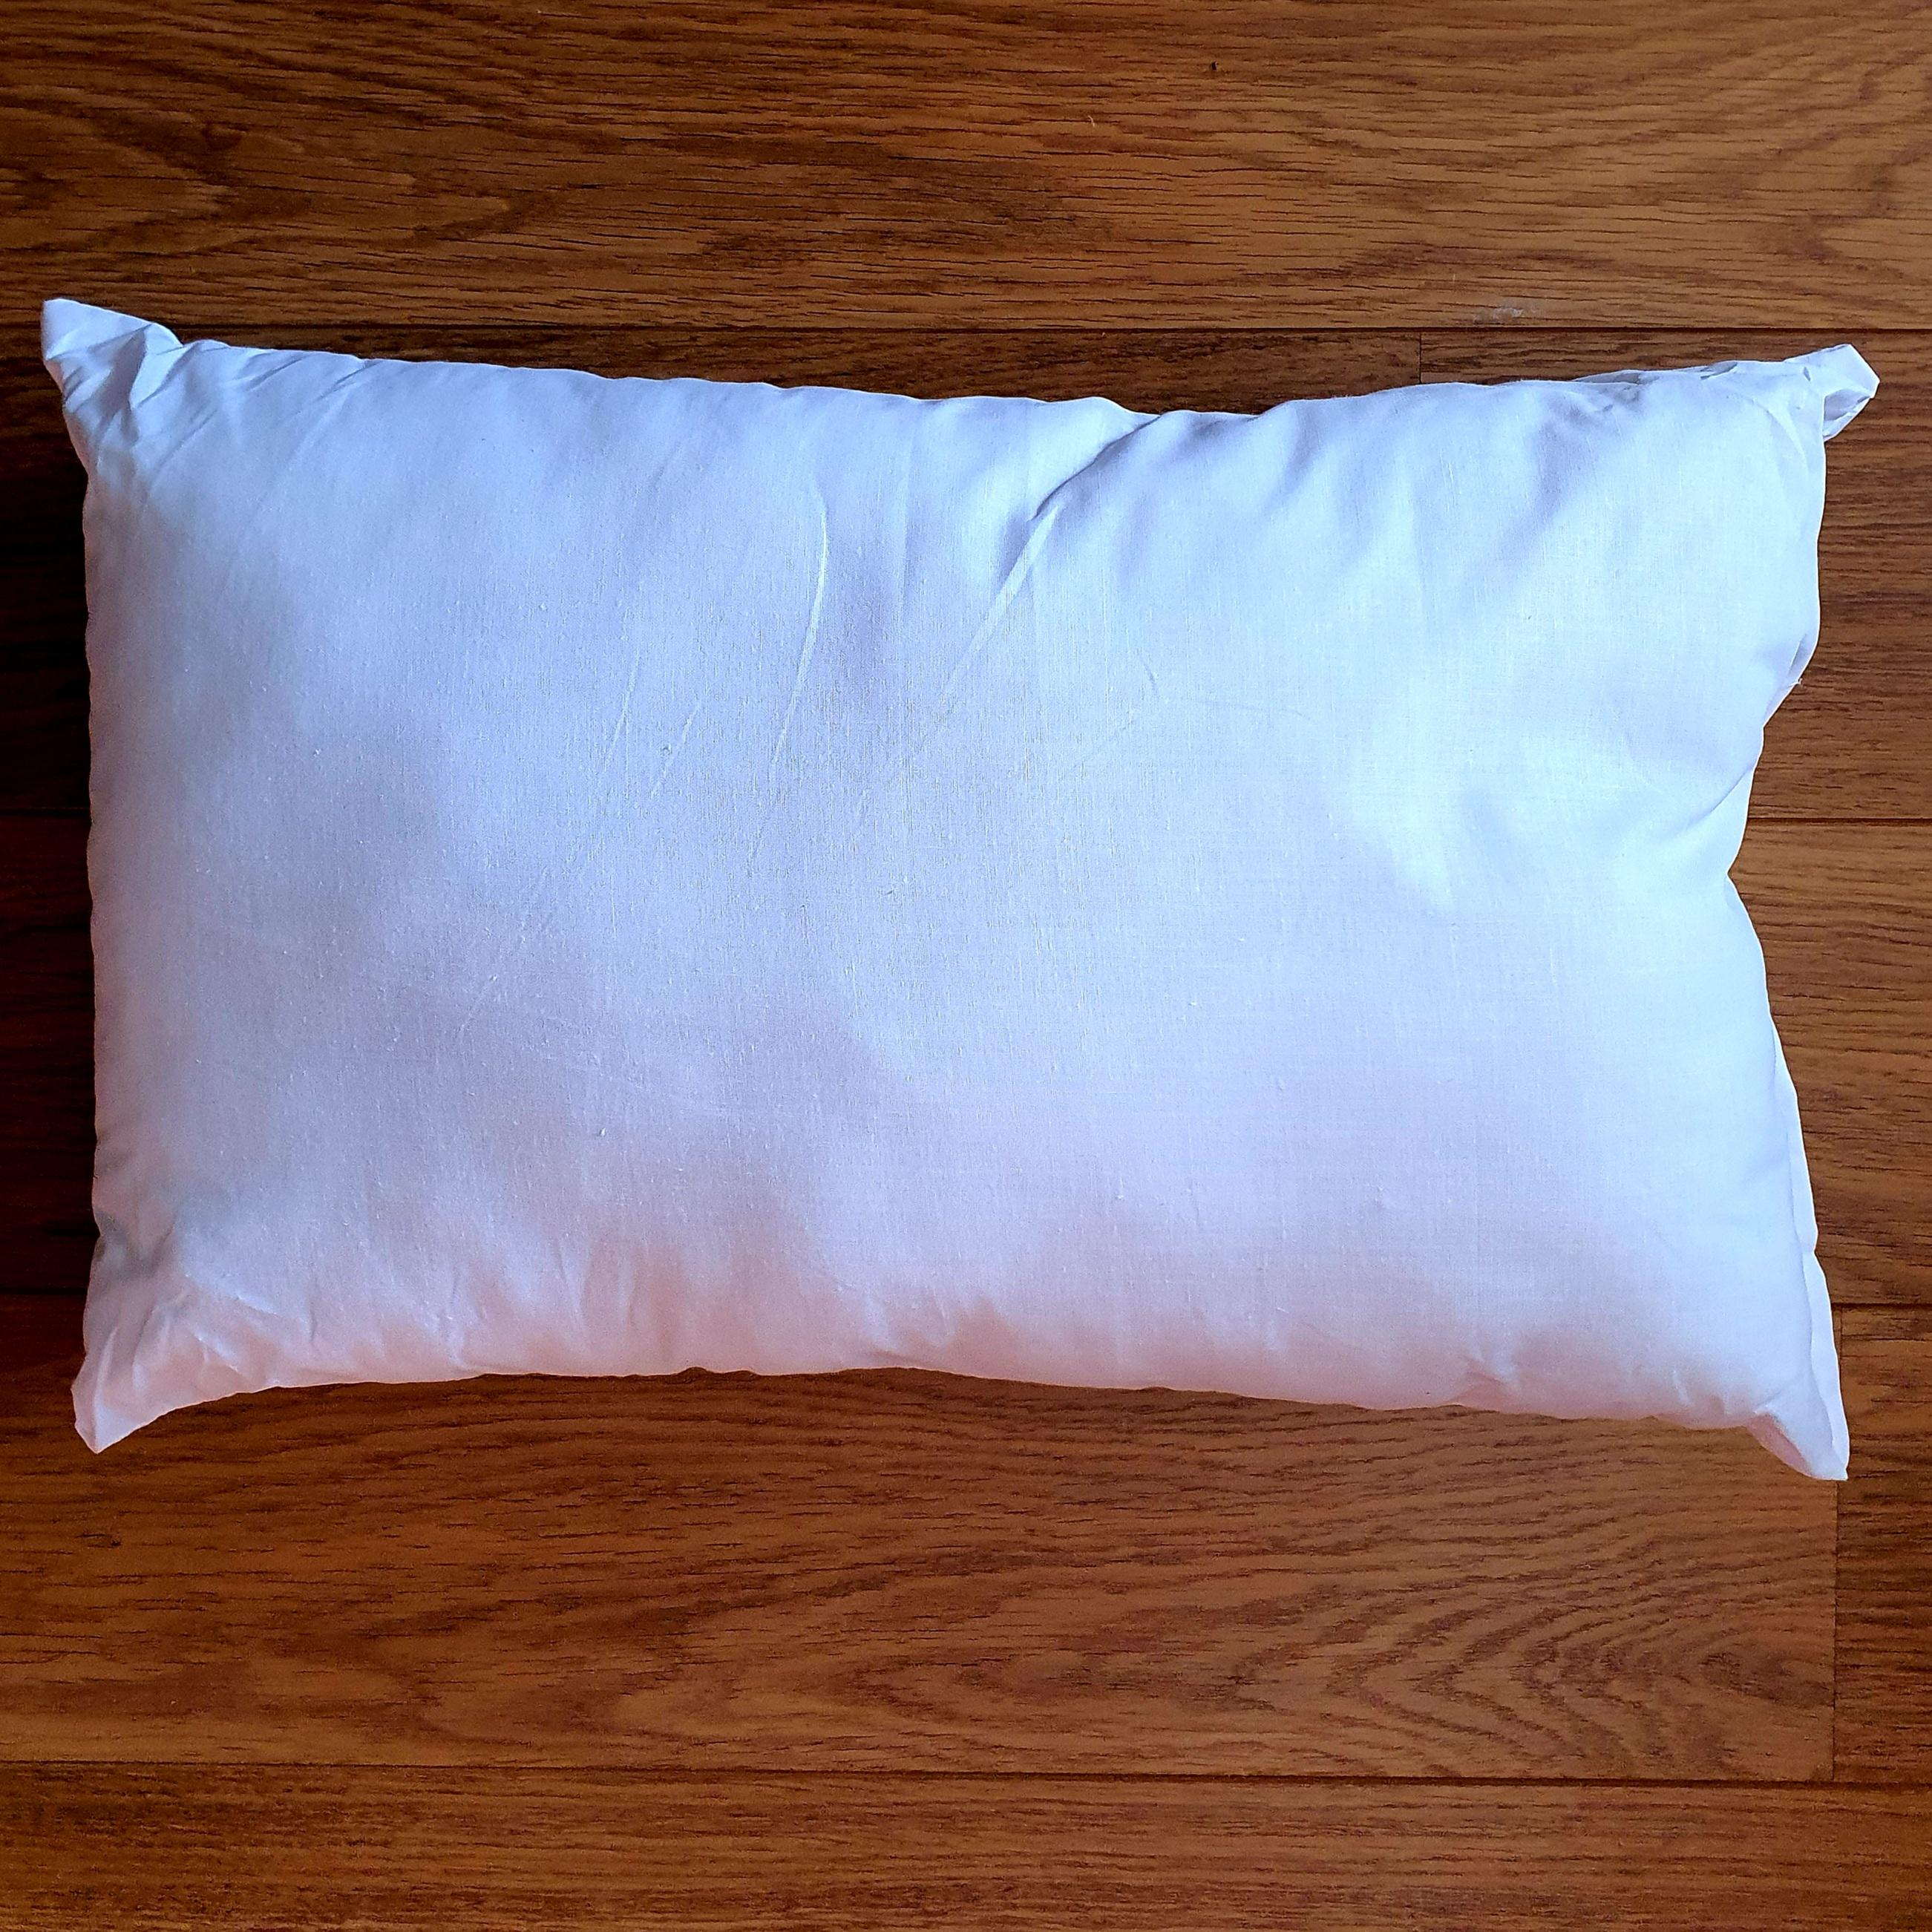 55cm x 35cm cushion inner pad generously filled with Eco-Hollowfibre made from recycled plastic bottles in white poly cotton outer cover.